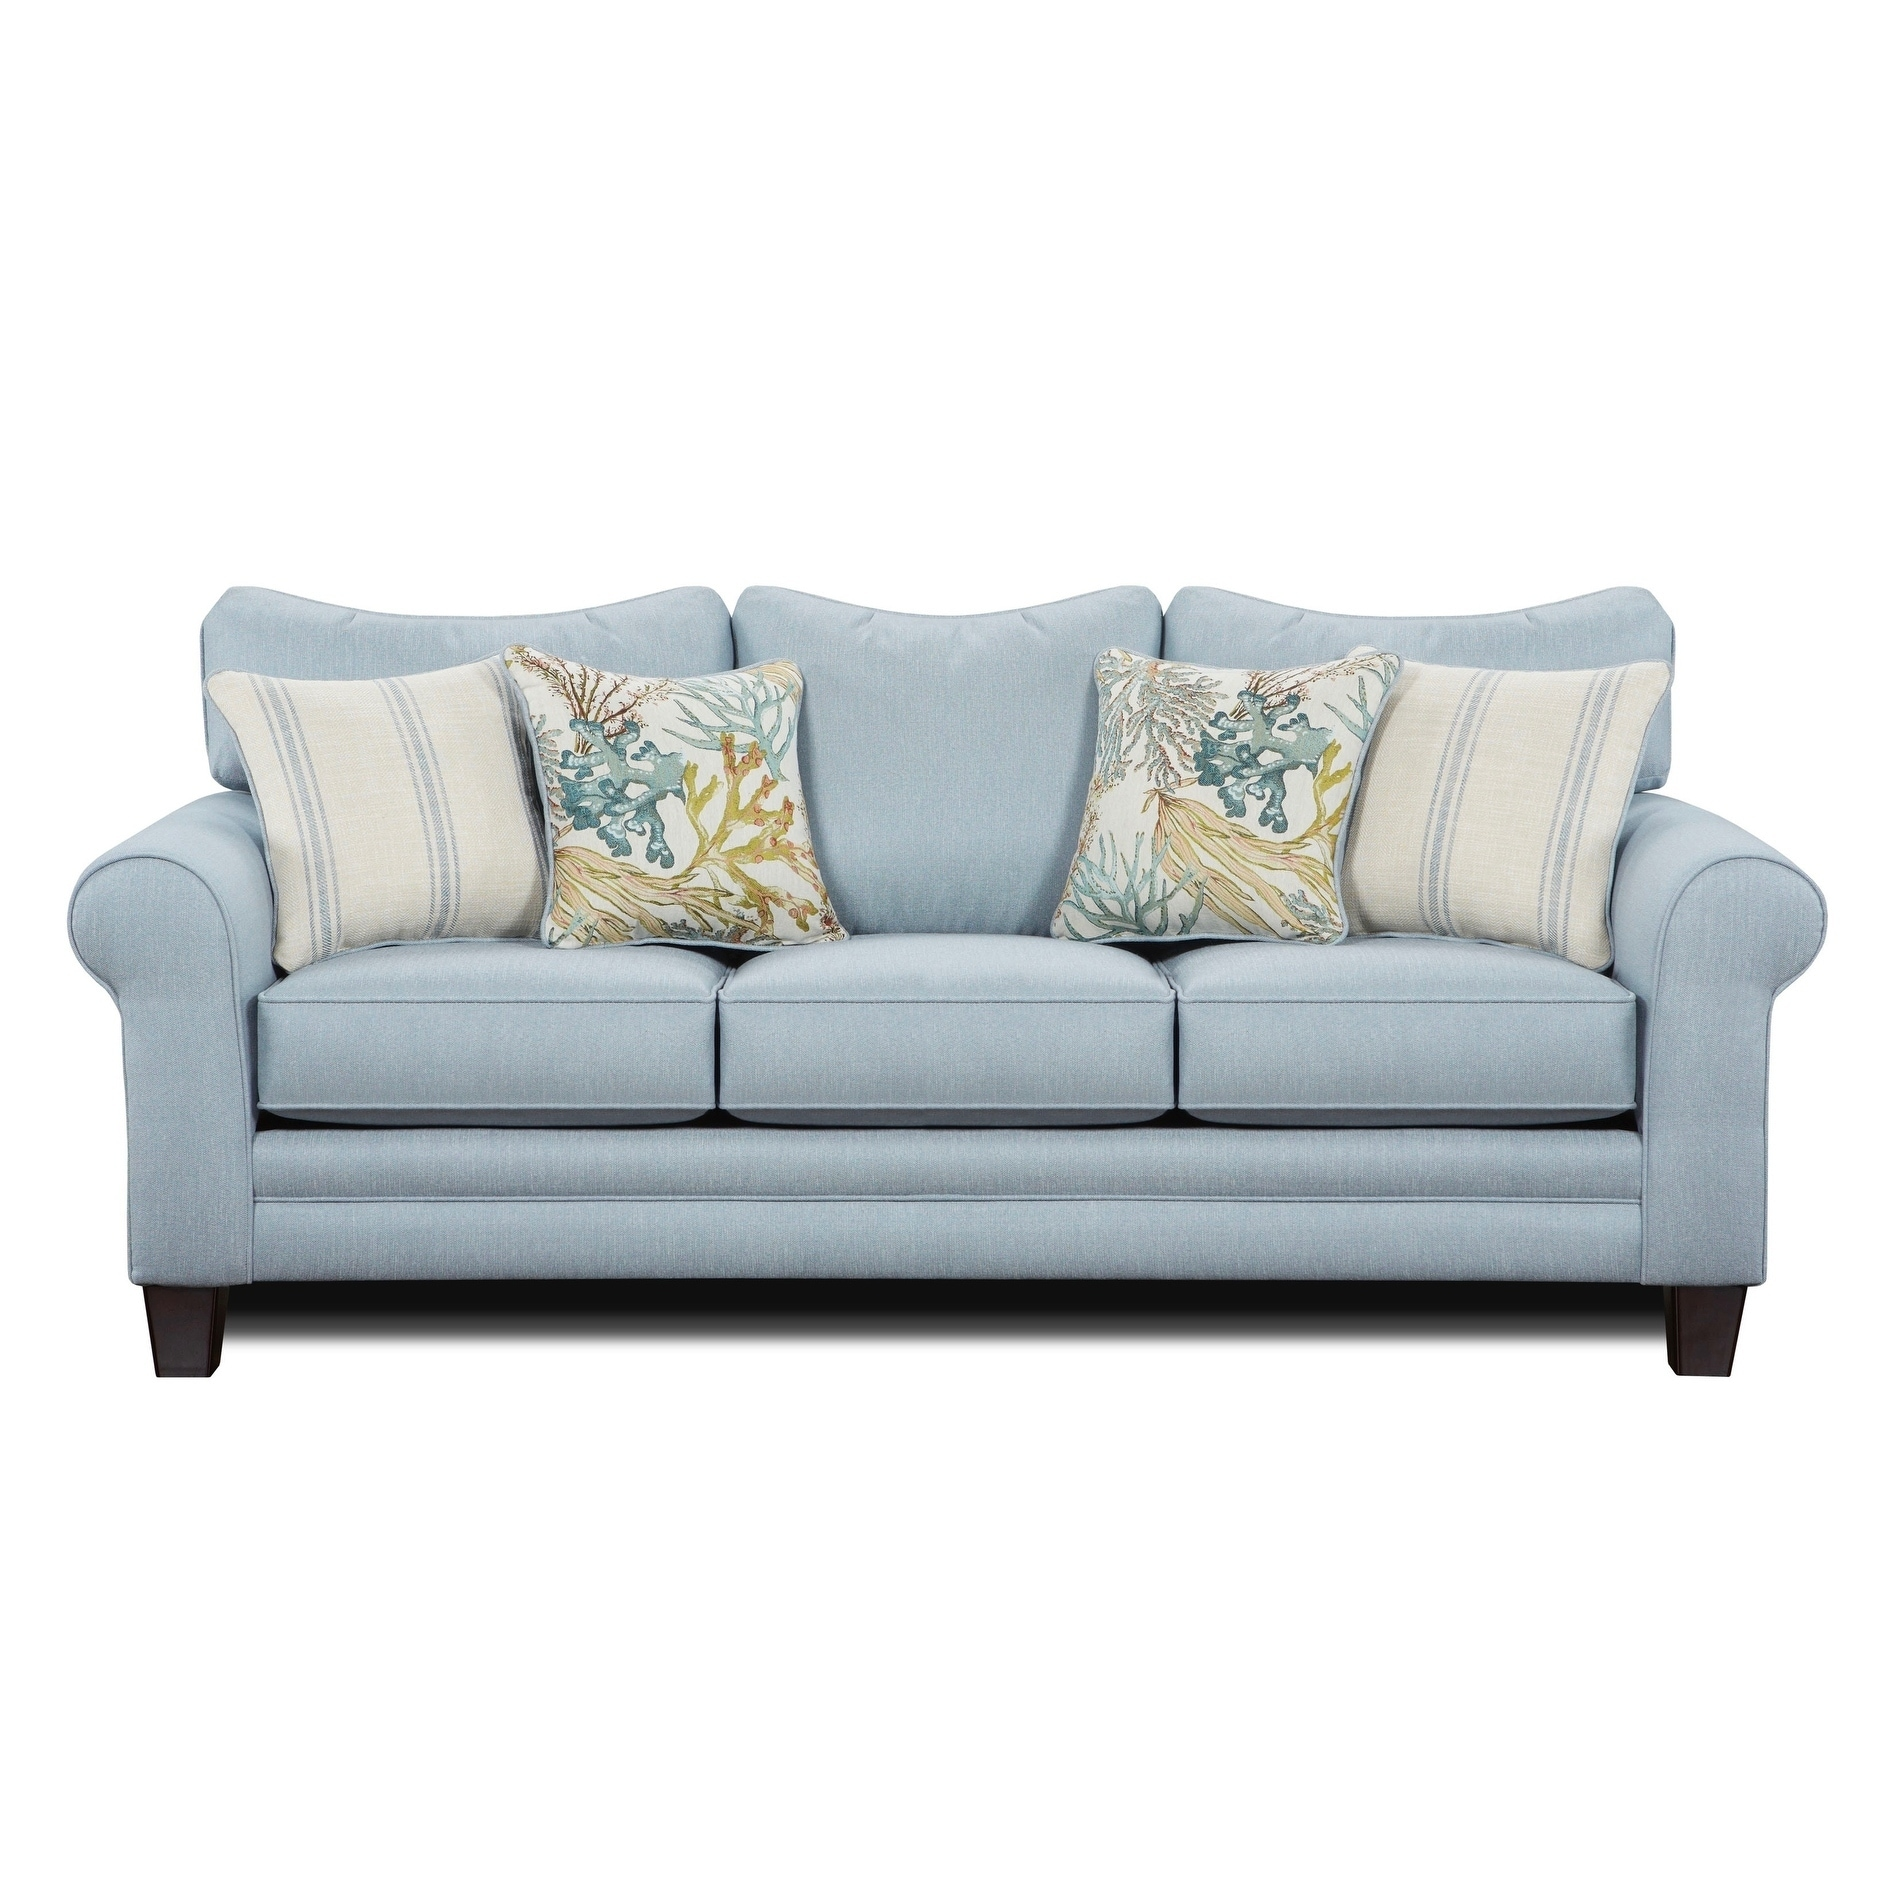 Labyrinth Sky Blue Sleeper Sofa Free Shipping Today 25429574